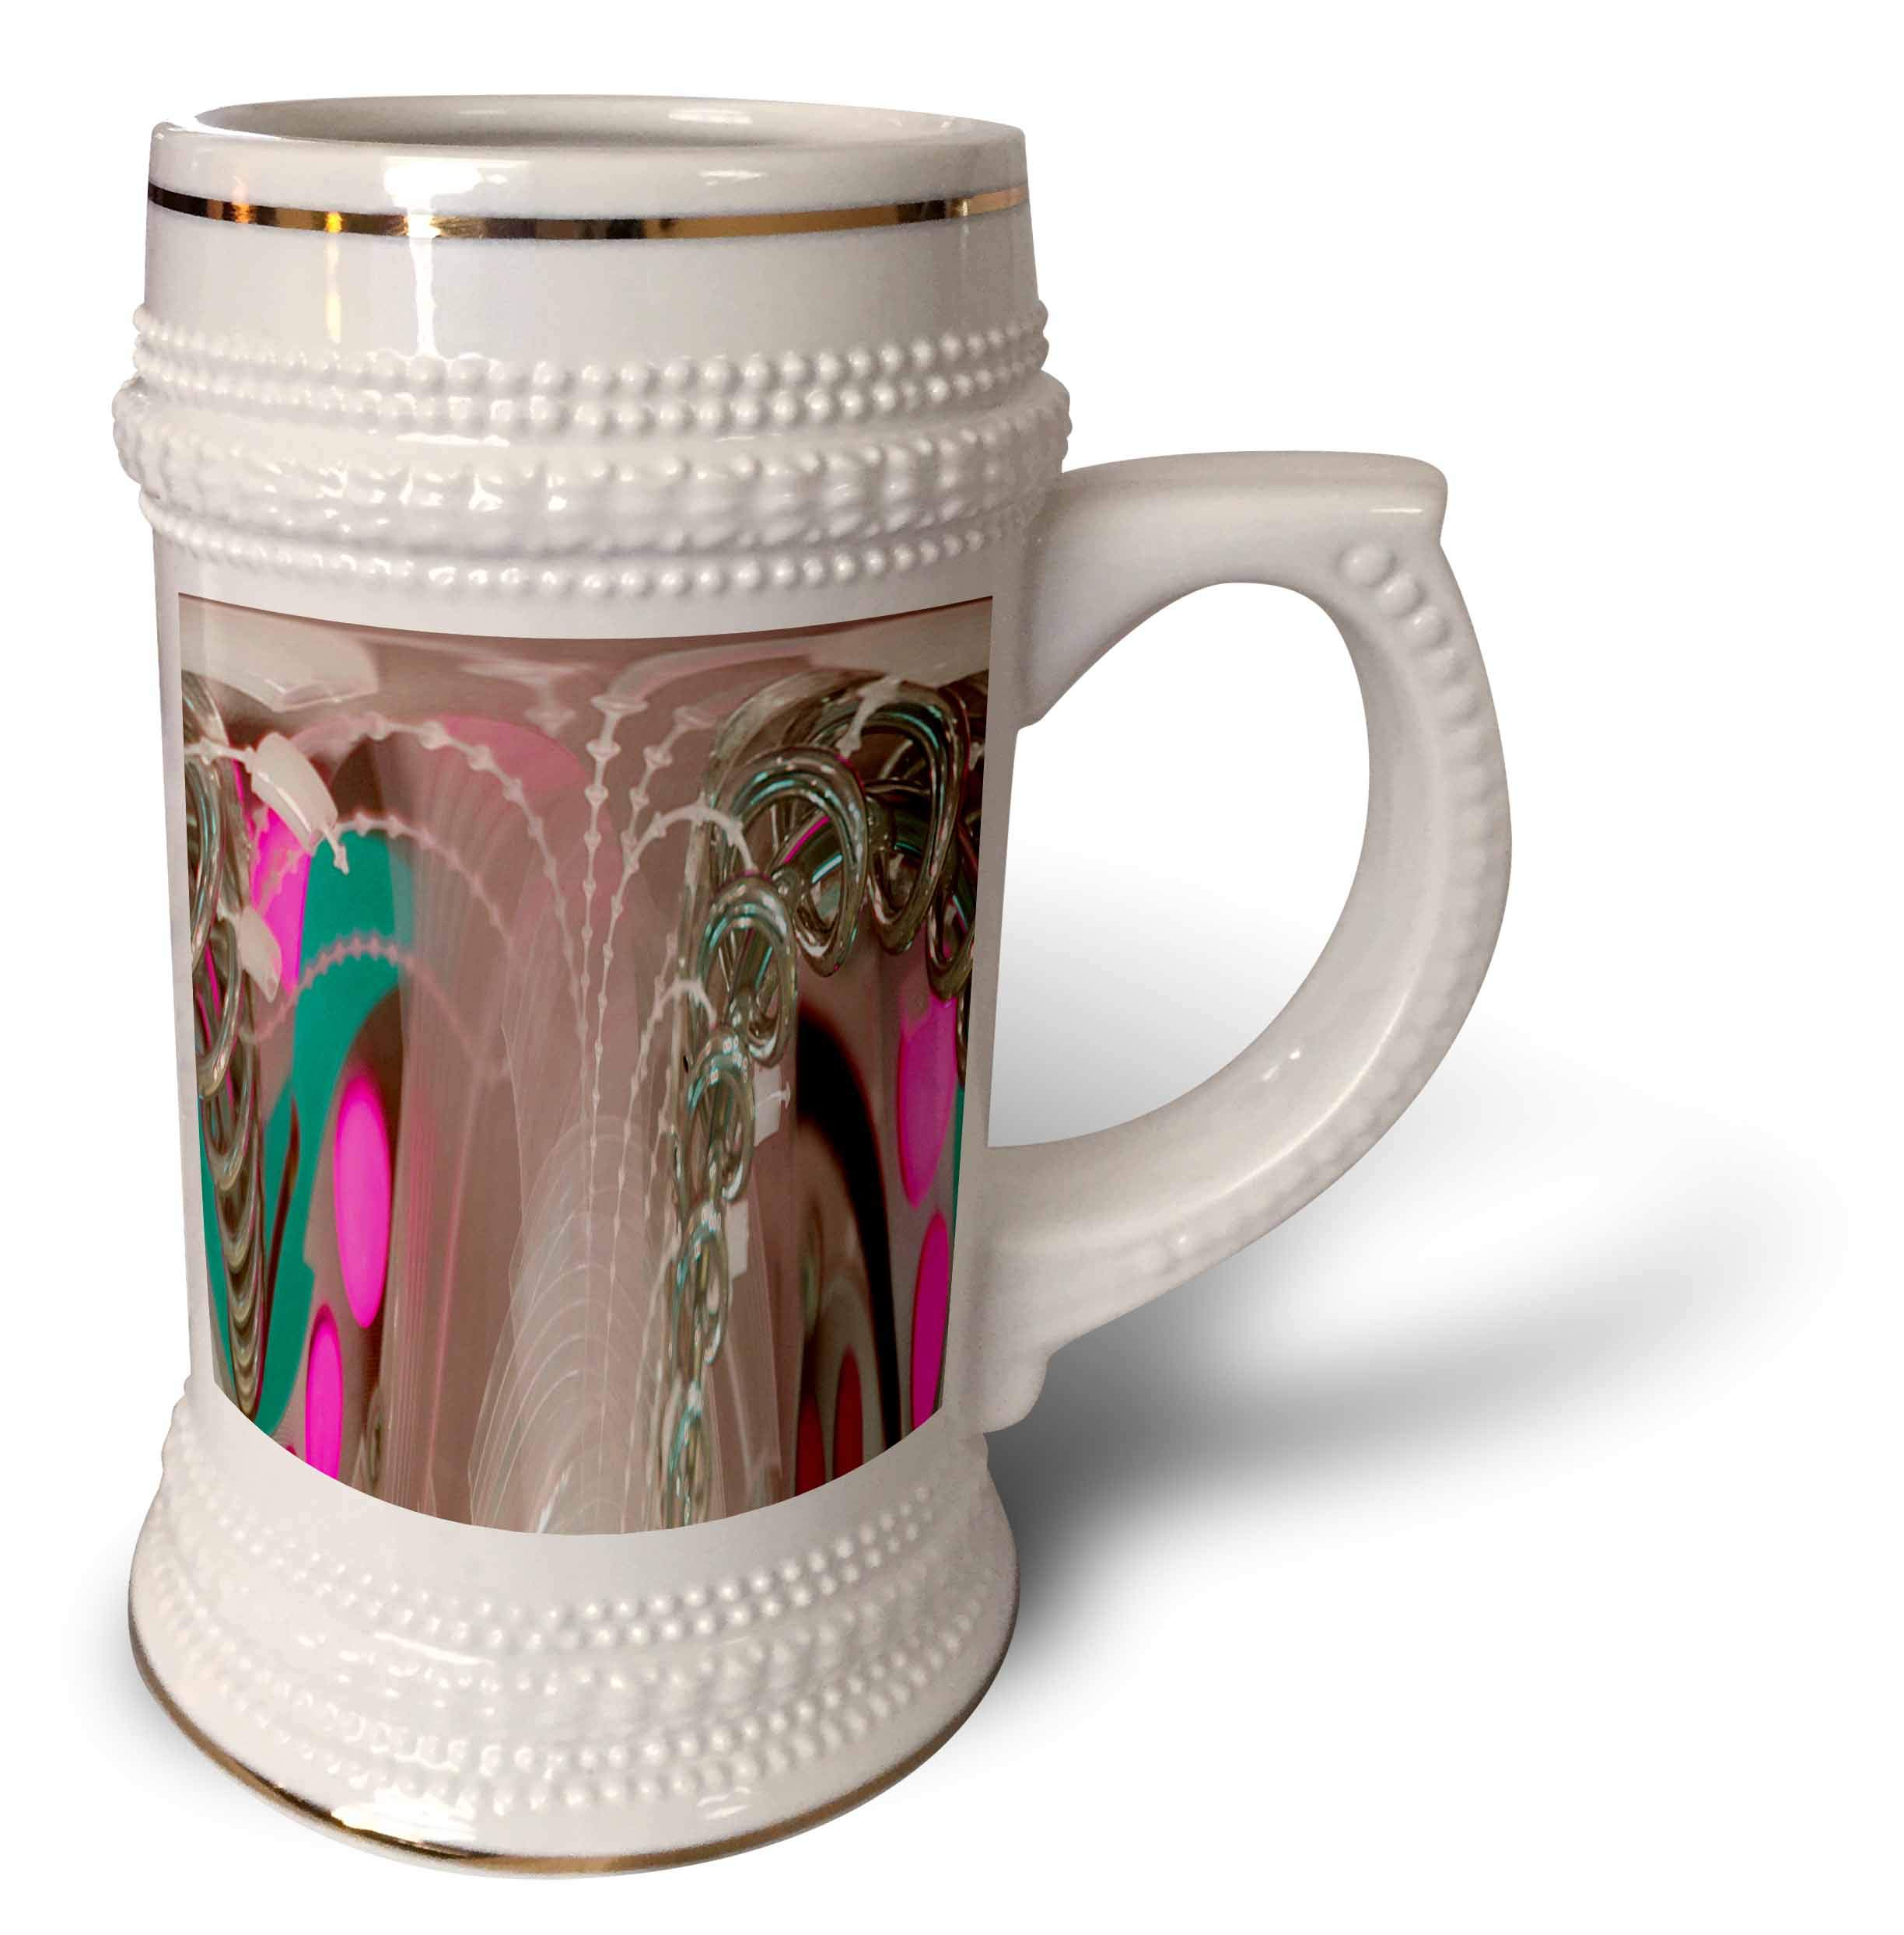 3dRose Jos Fauxtographee- Polar to Rectangular Metal - A metal game at a restaurant with pink and green hues made modern - 22oz Stein Mug (stn_288895_1)